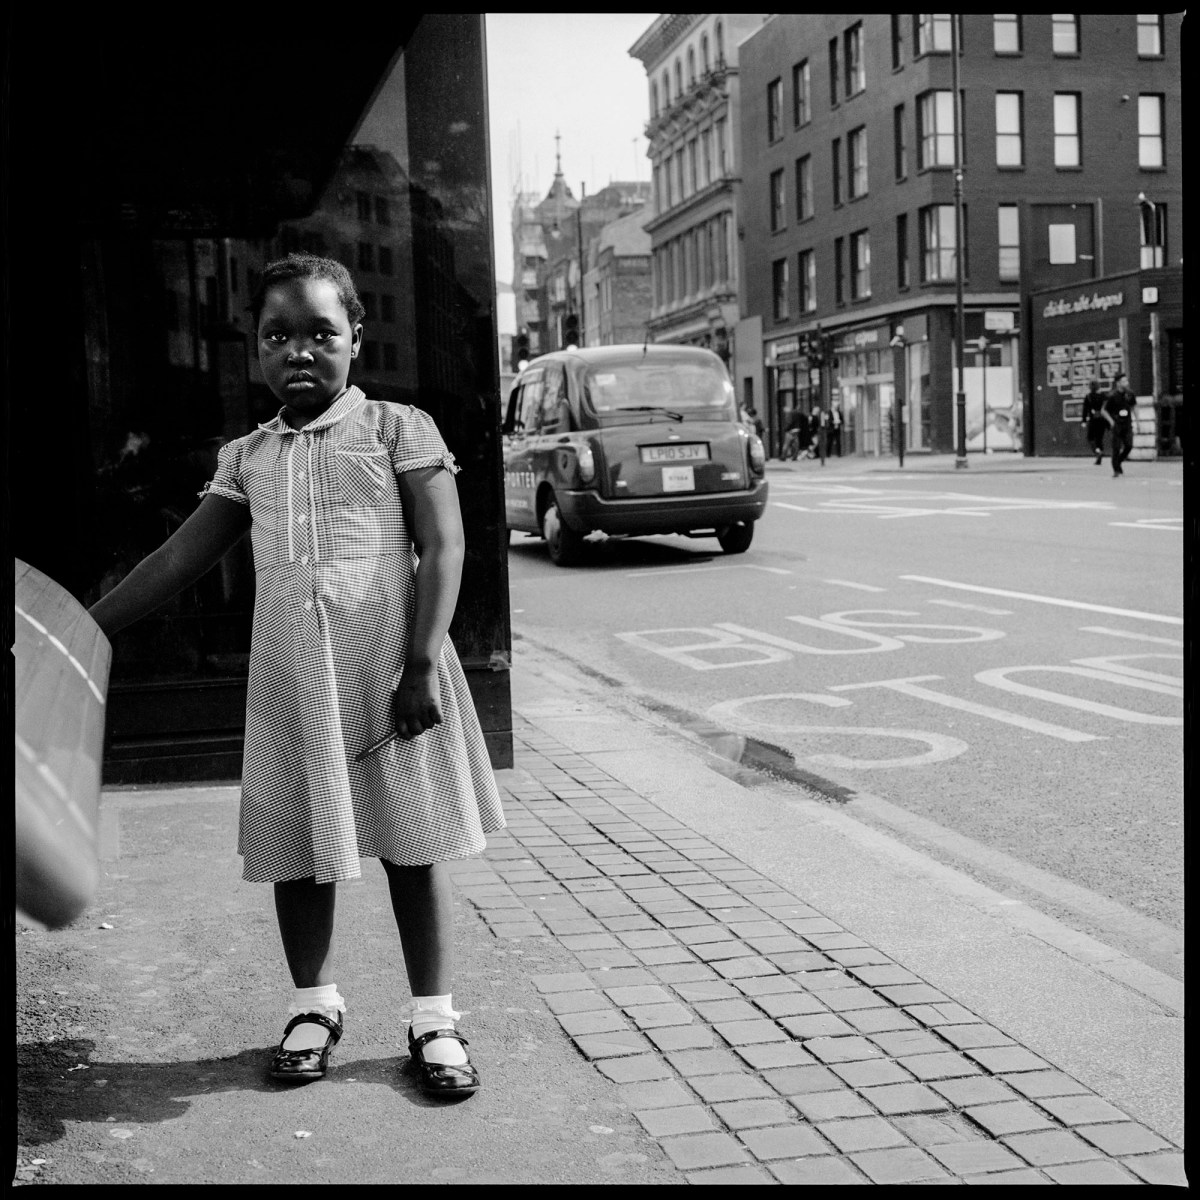 Adama Jalloh - Streets of London2